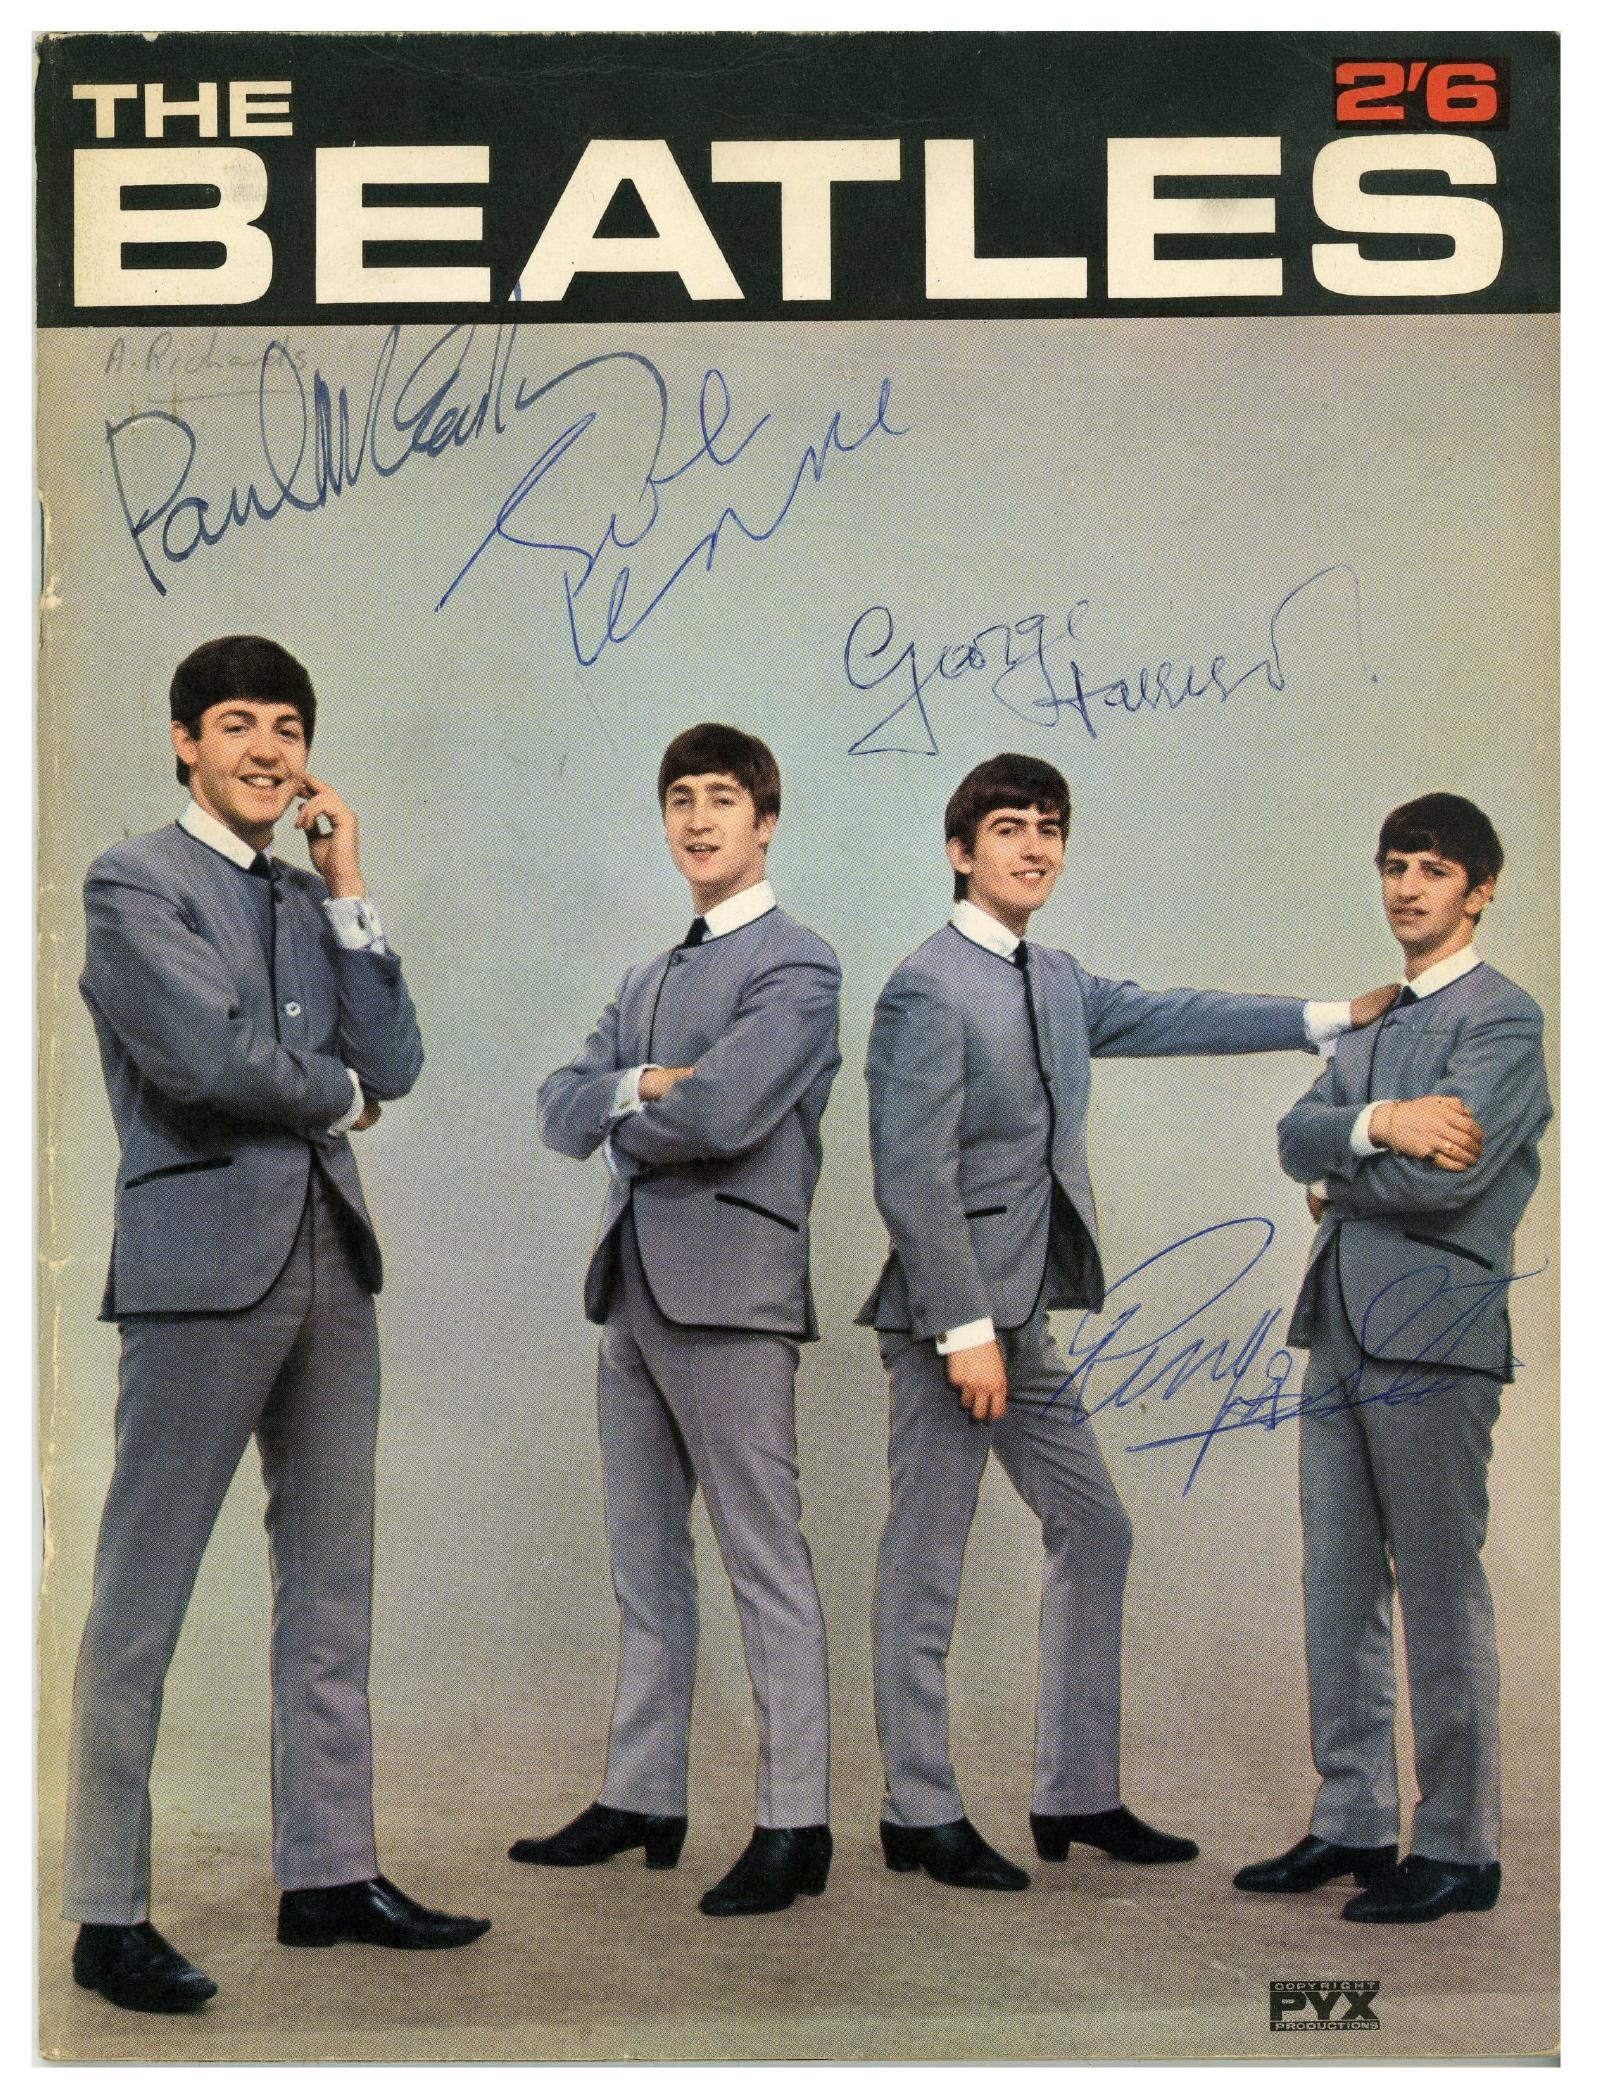 This Is A Great Image To Have Signed By The Beatles Especially In Color 18500